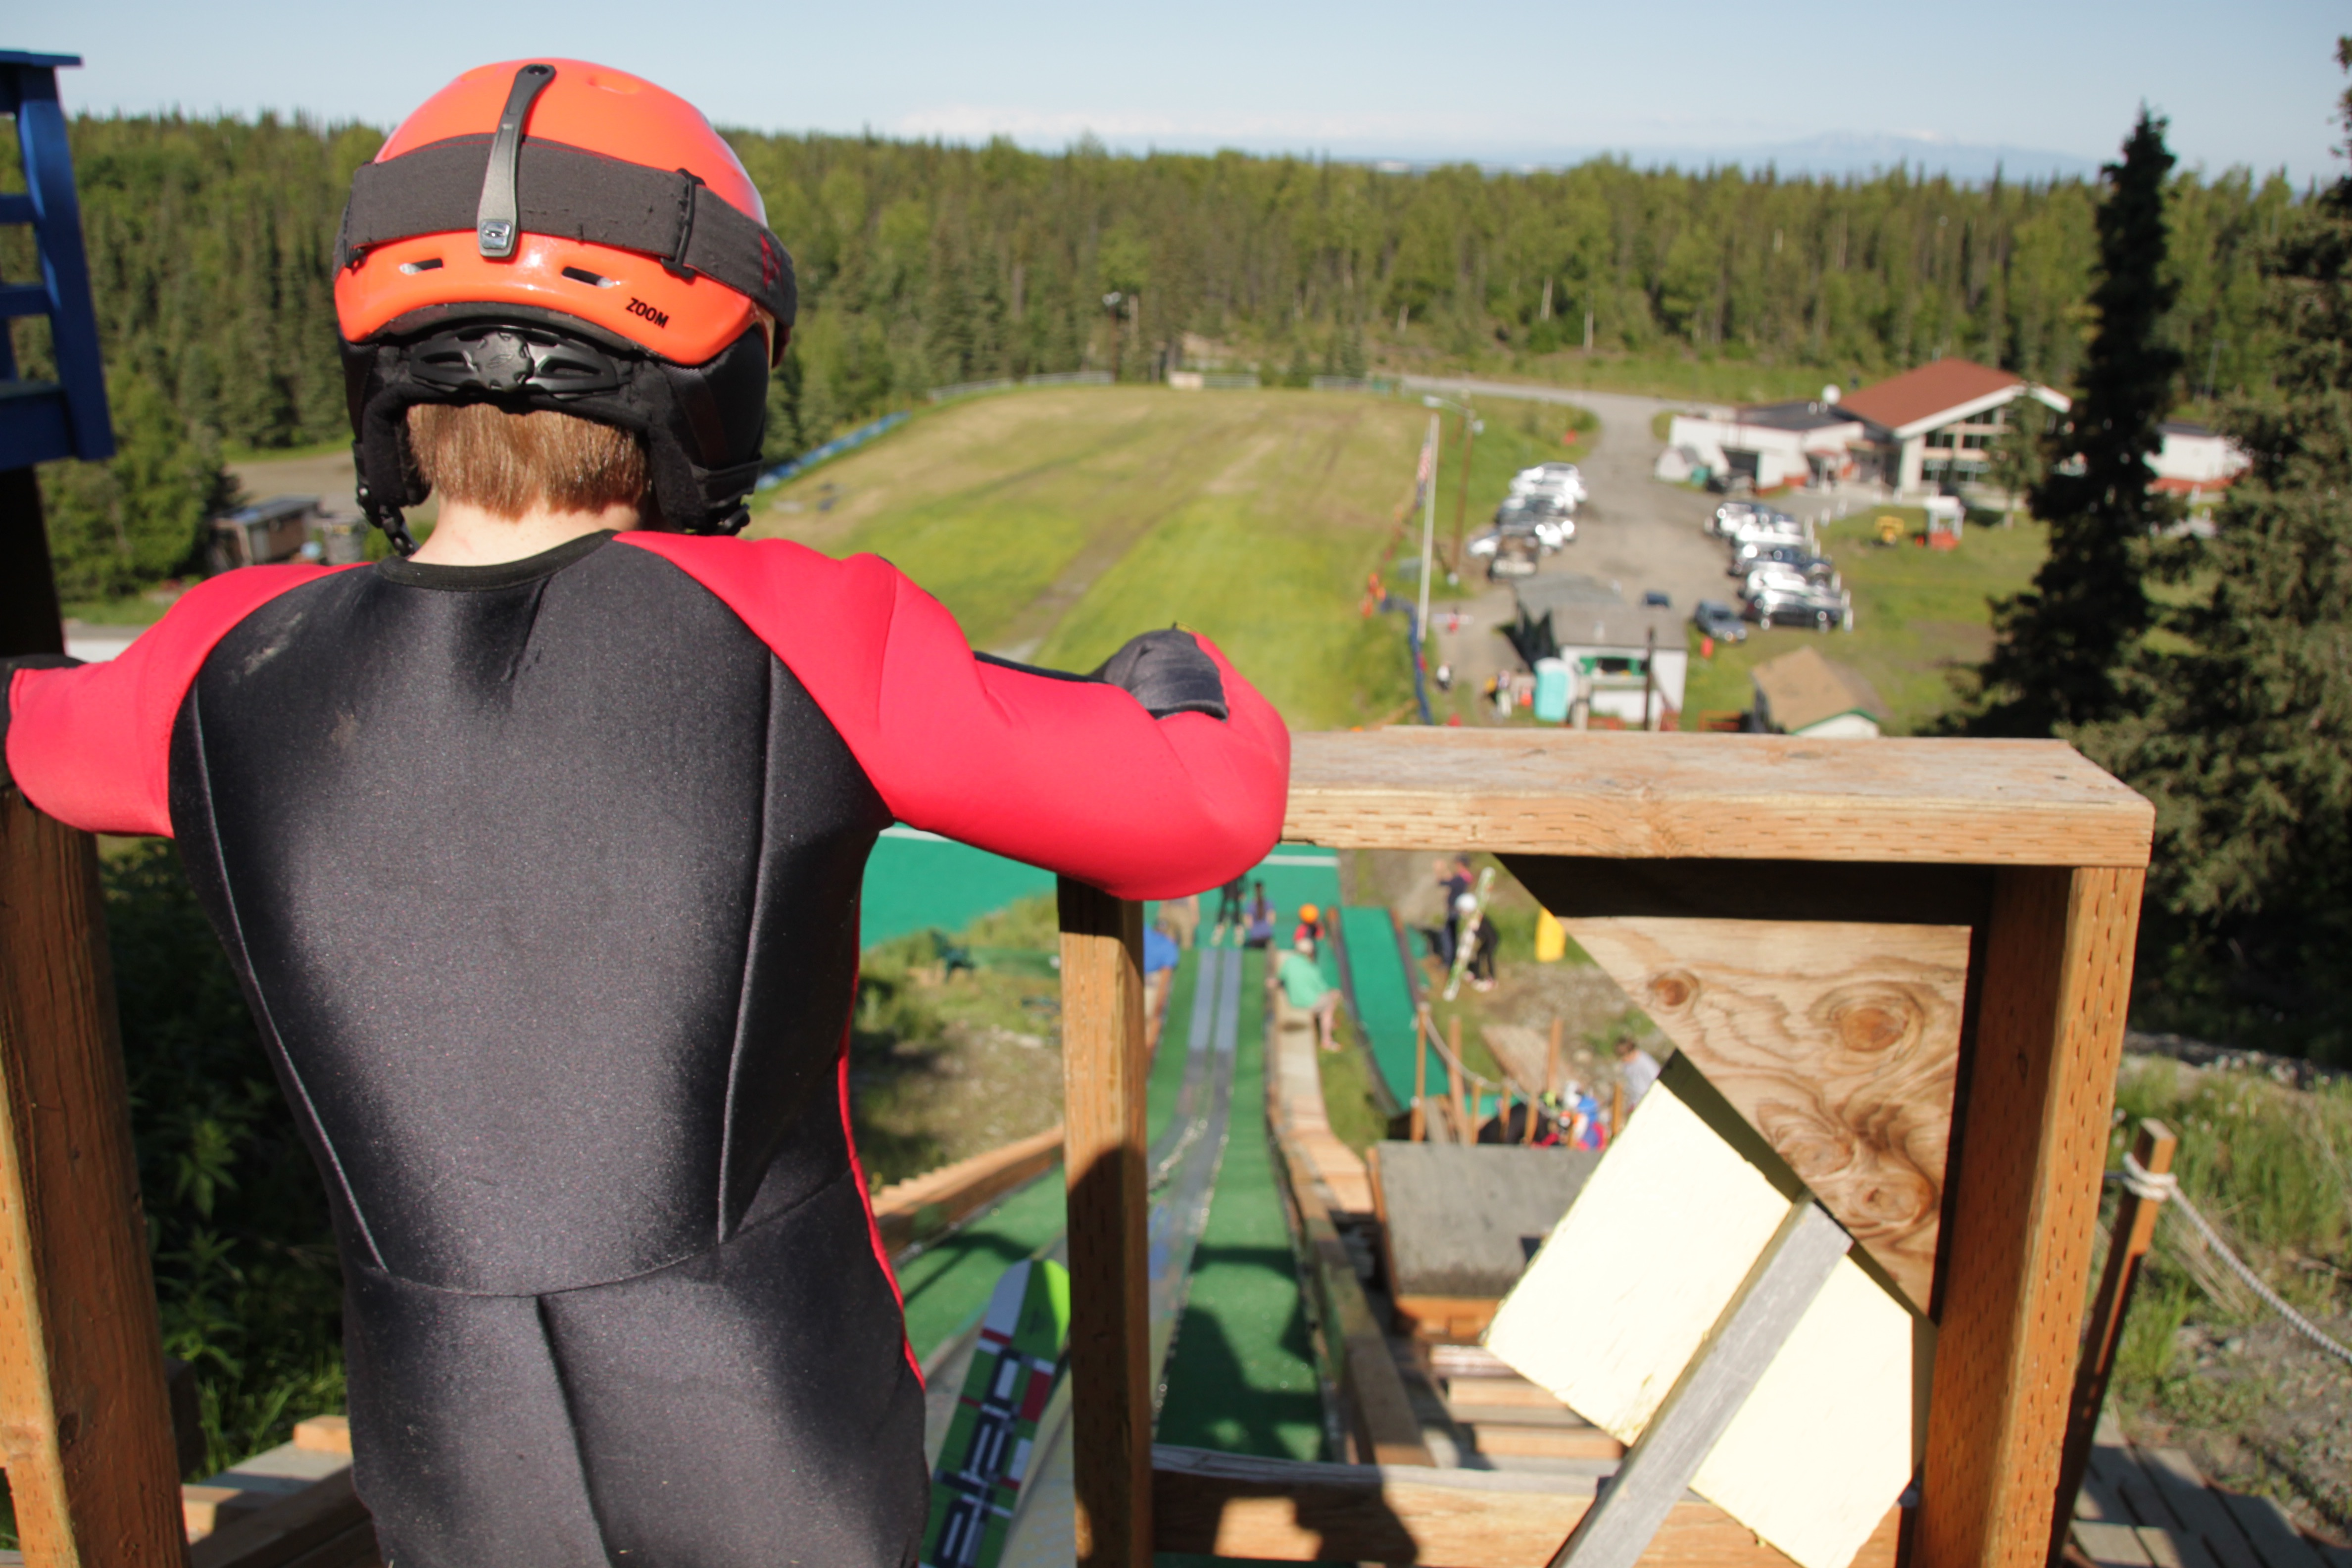 One of the skiers looks out at the ski jump facility from the top of the 40-meter hill. (Photo by Ammon Swenson, Alaska Public Media - Anchorage)